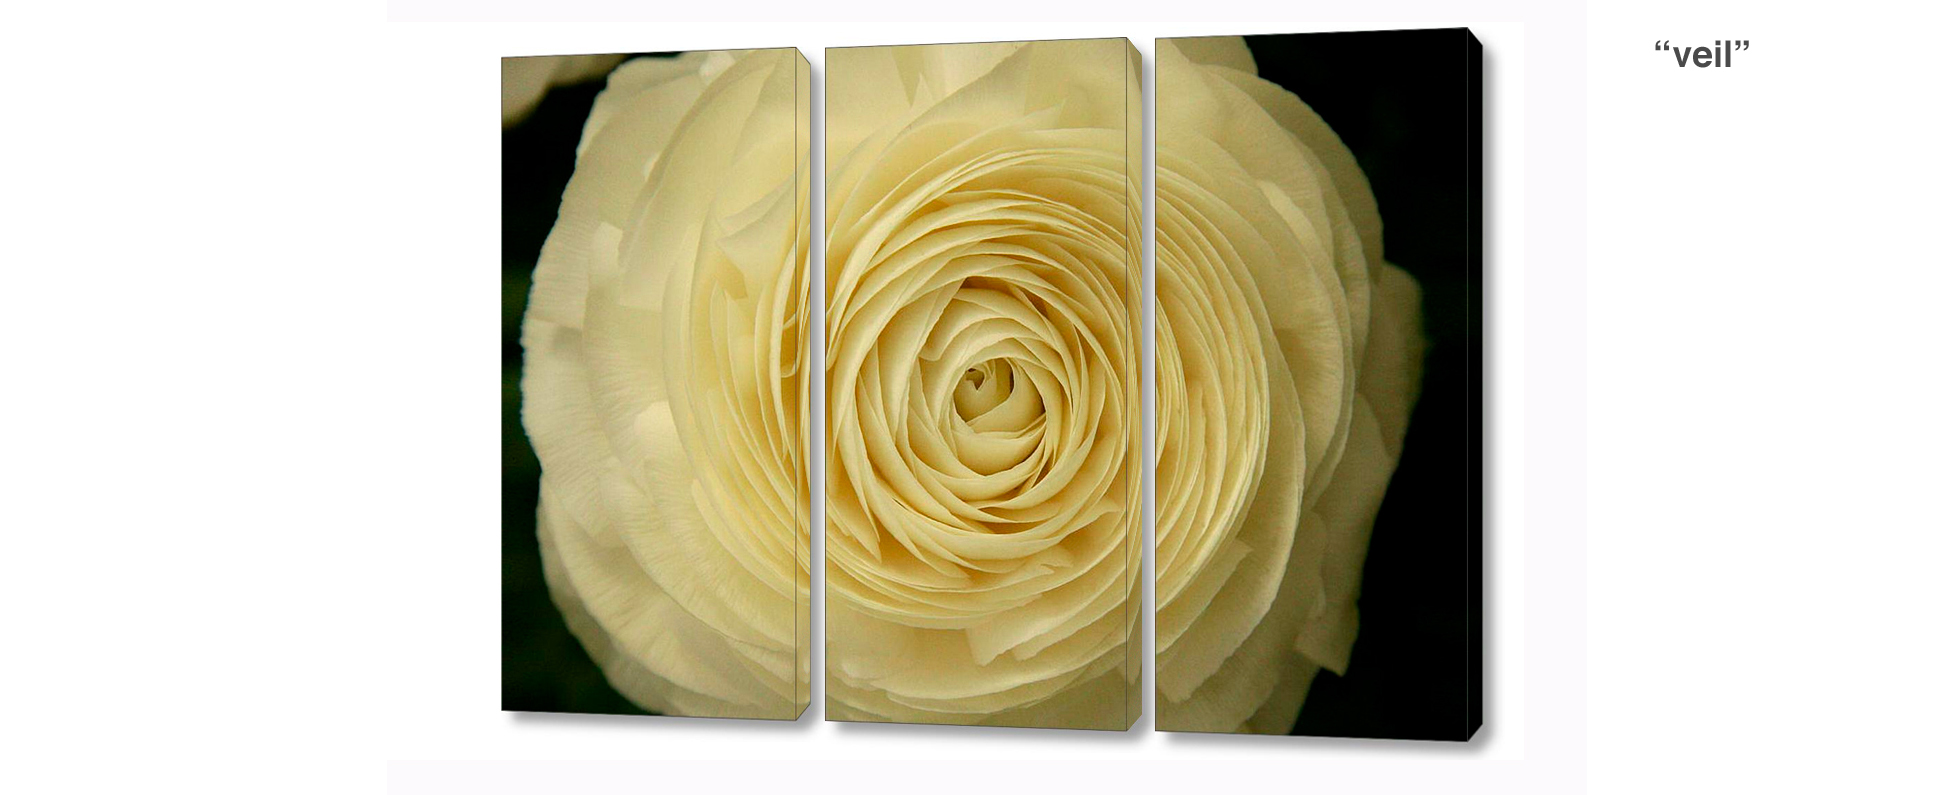 triptych ranunculus - 3 Piece limited edition giclee canvas floral wall decor